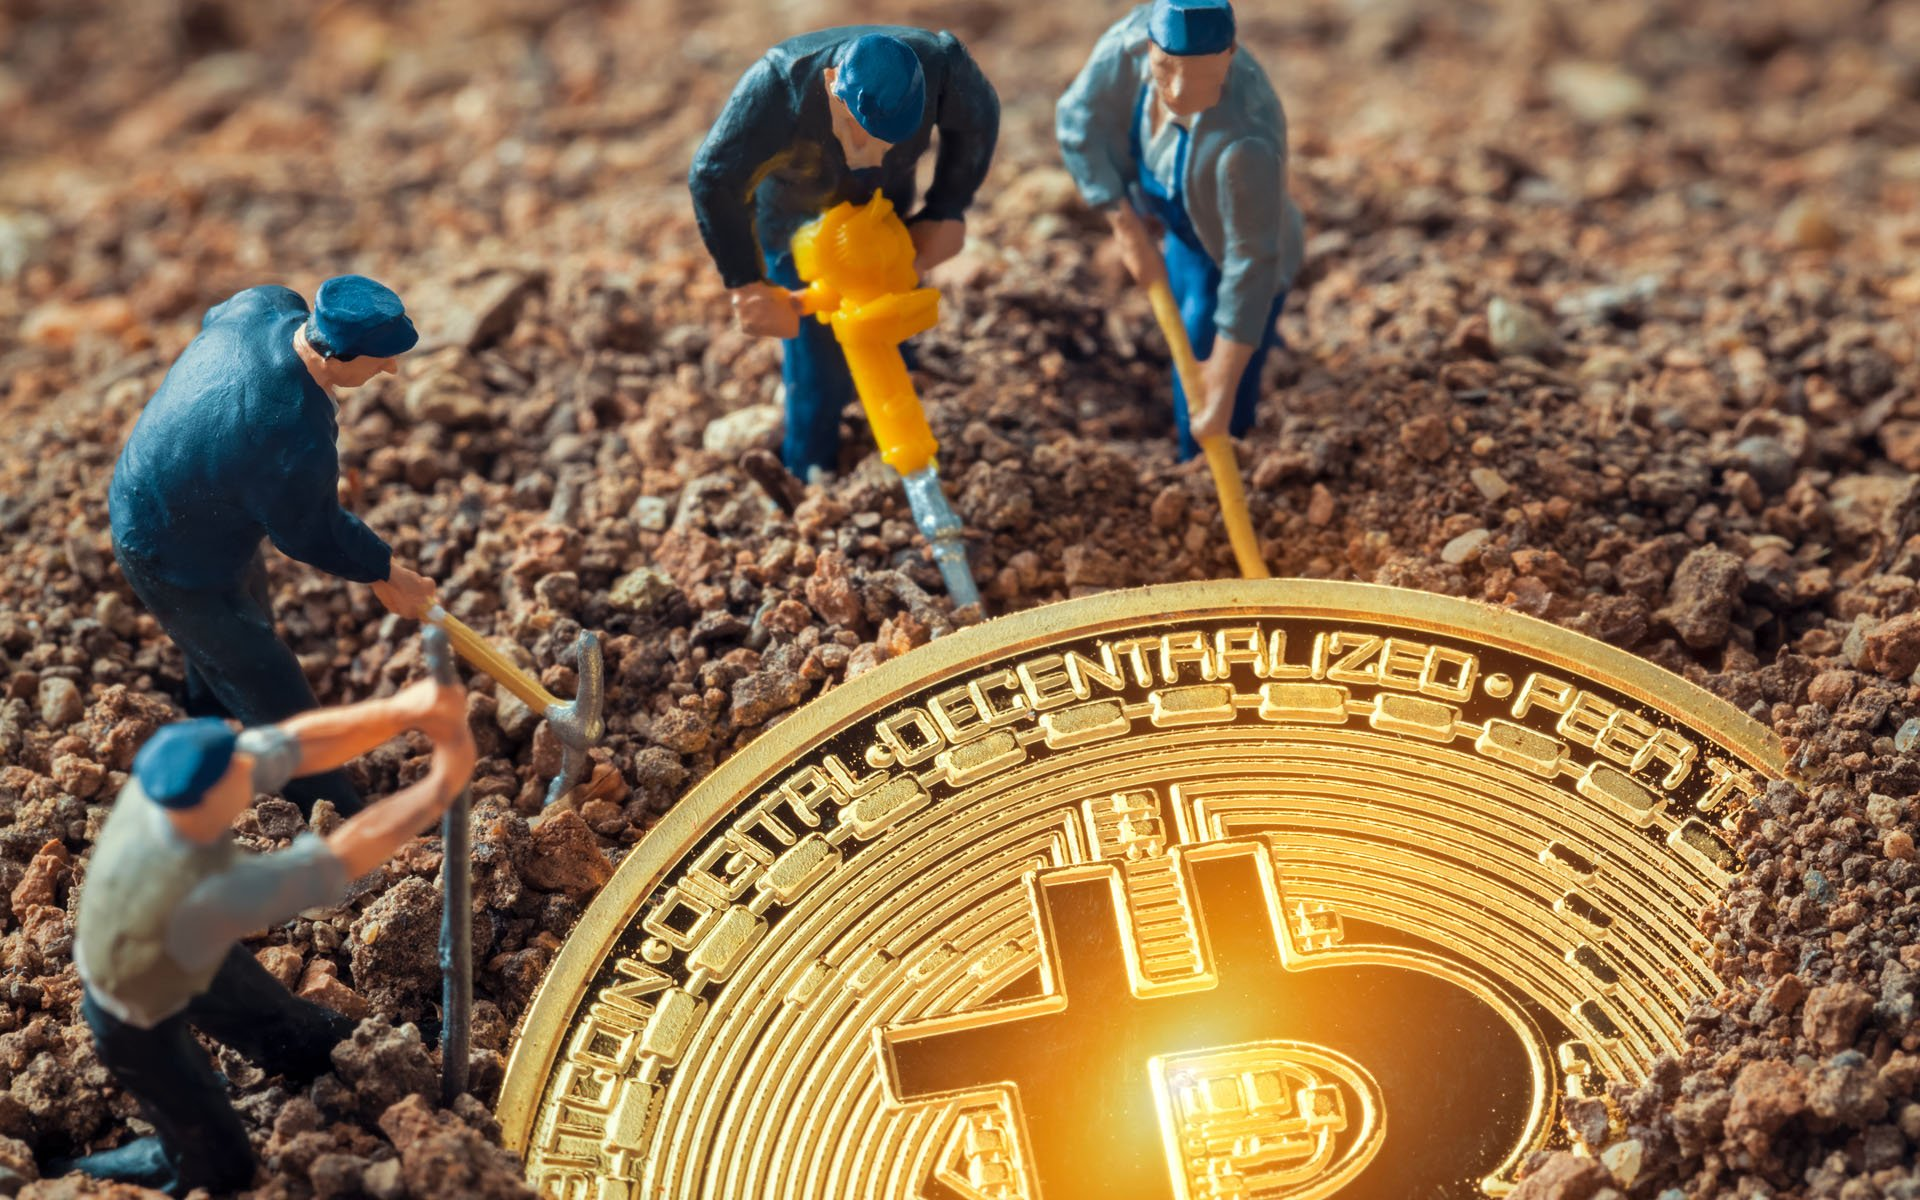 CRYPTOCURRENCY MINERS IGNORE THE BITCOIN PRICE FALL, FOCUS ON EXPANSION INSTEAD